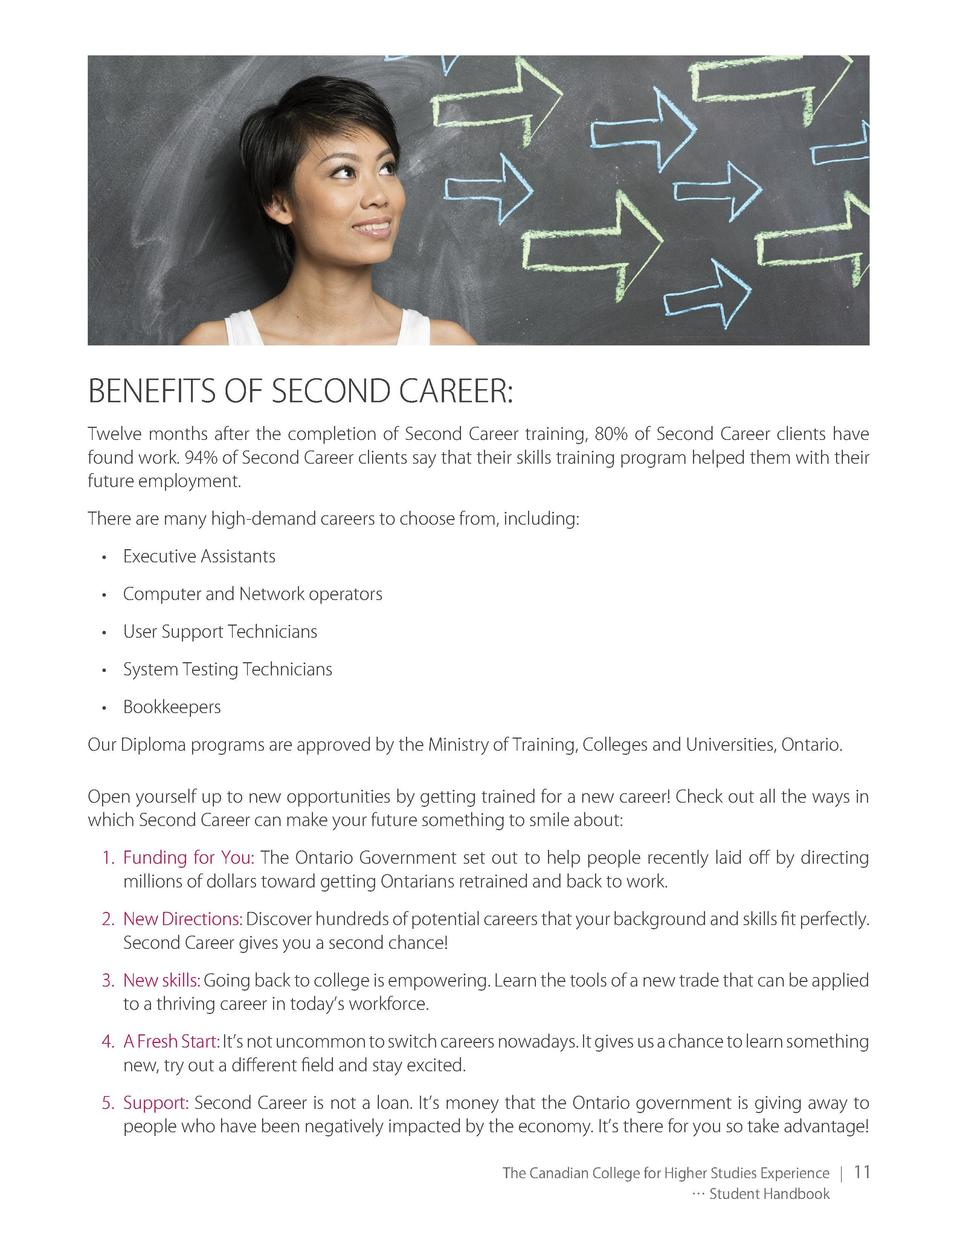 You could rejuvenate your career  With SECOND CAREER Contact us for free counselling to select the right career and start ...